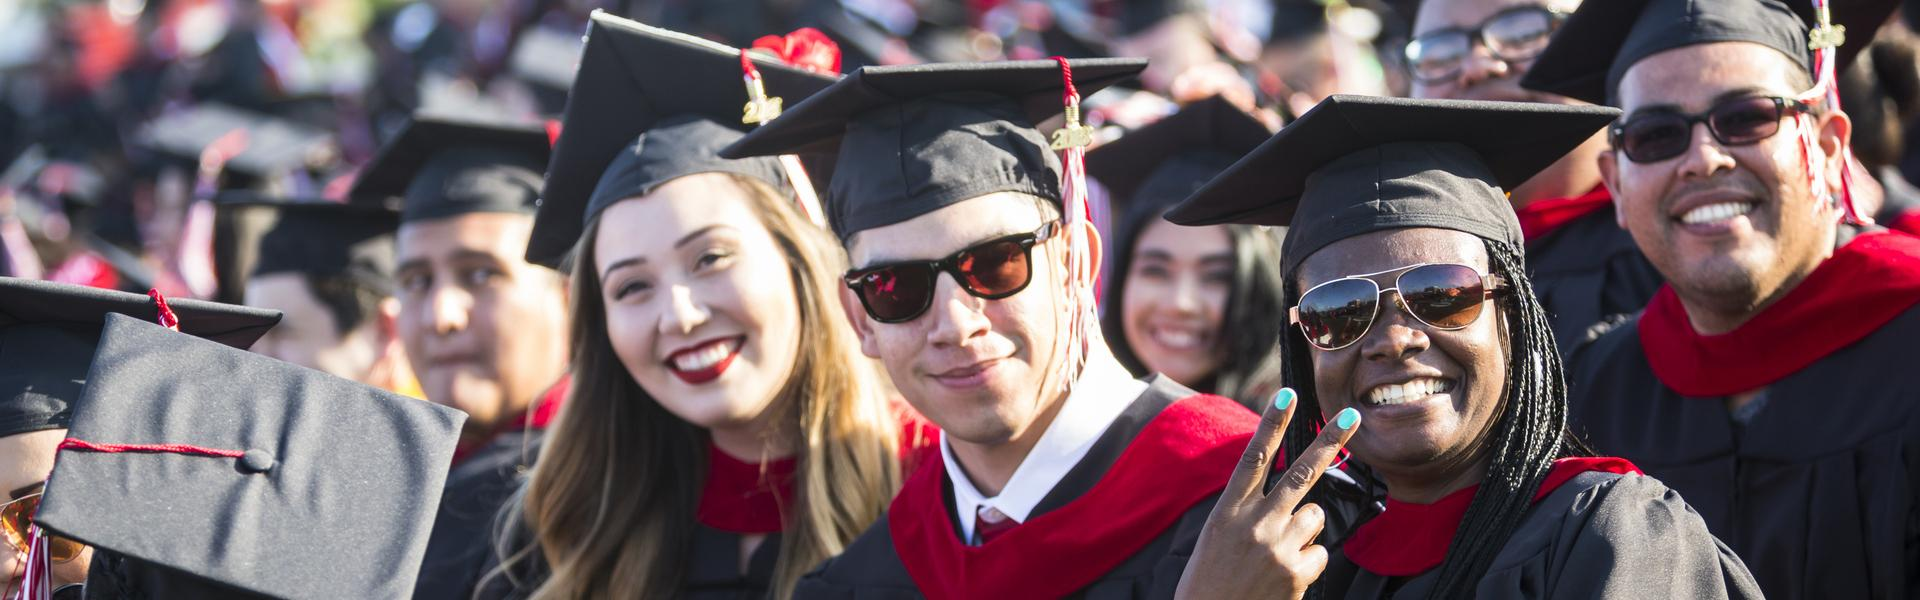 LBCC students at graduation ceremonies.